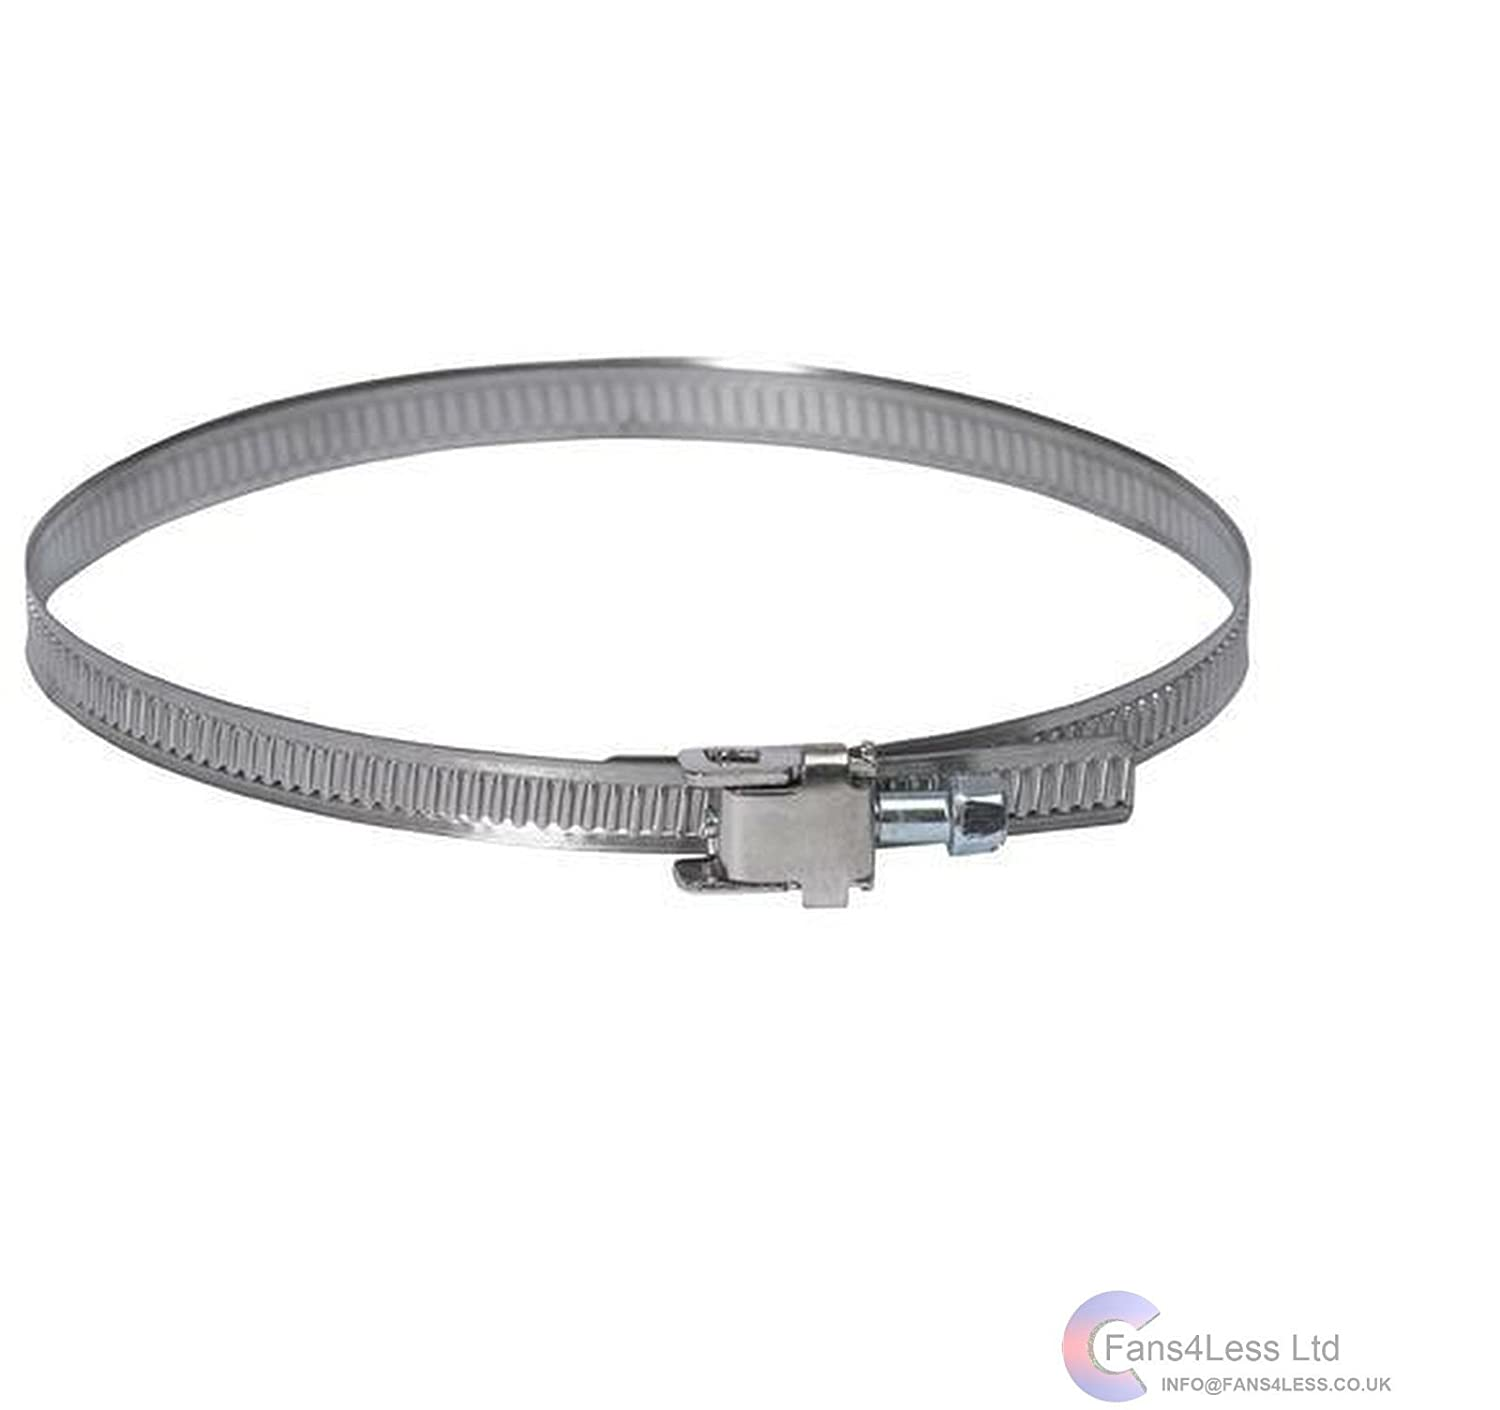 Duct Jubilee Clip Flexible Ducting Pipe Hose Ventilation 3' to 12' (2' to 4' (50mm to 110mm)) fans4less